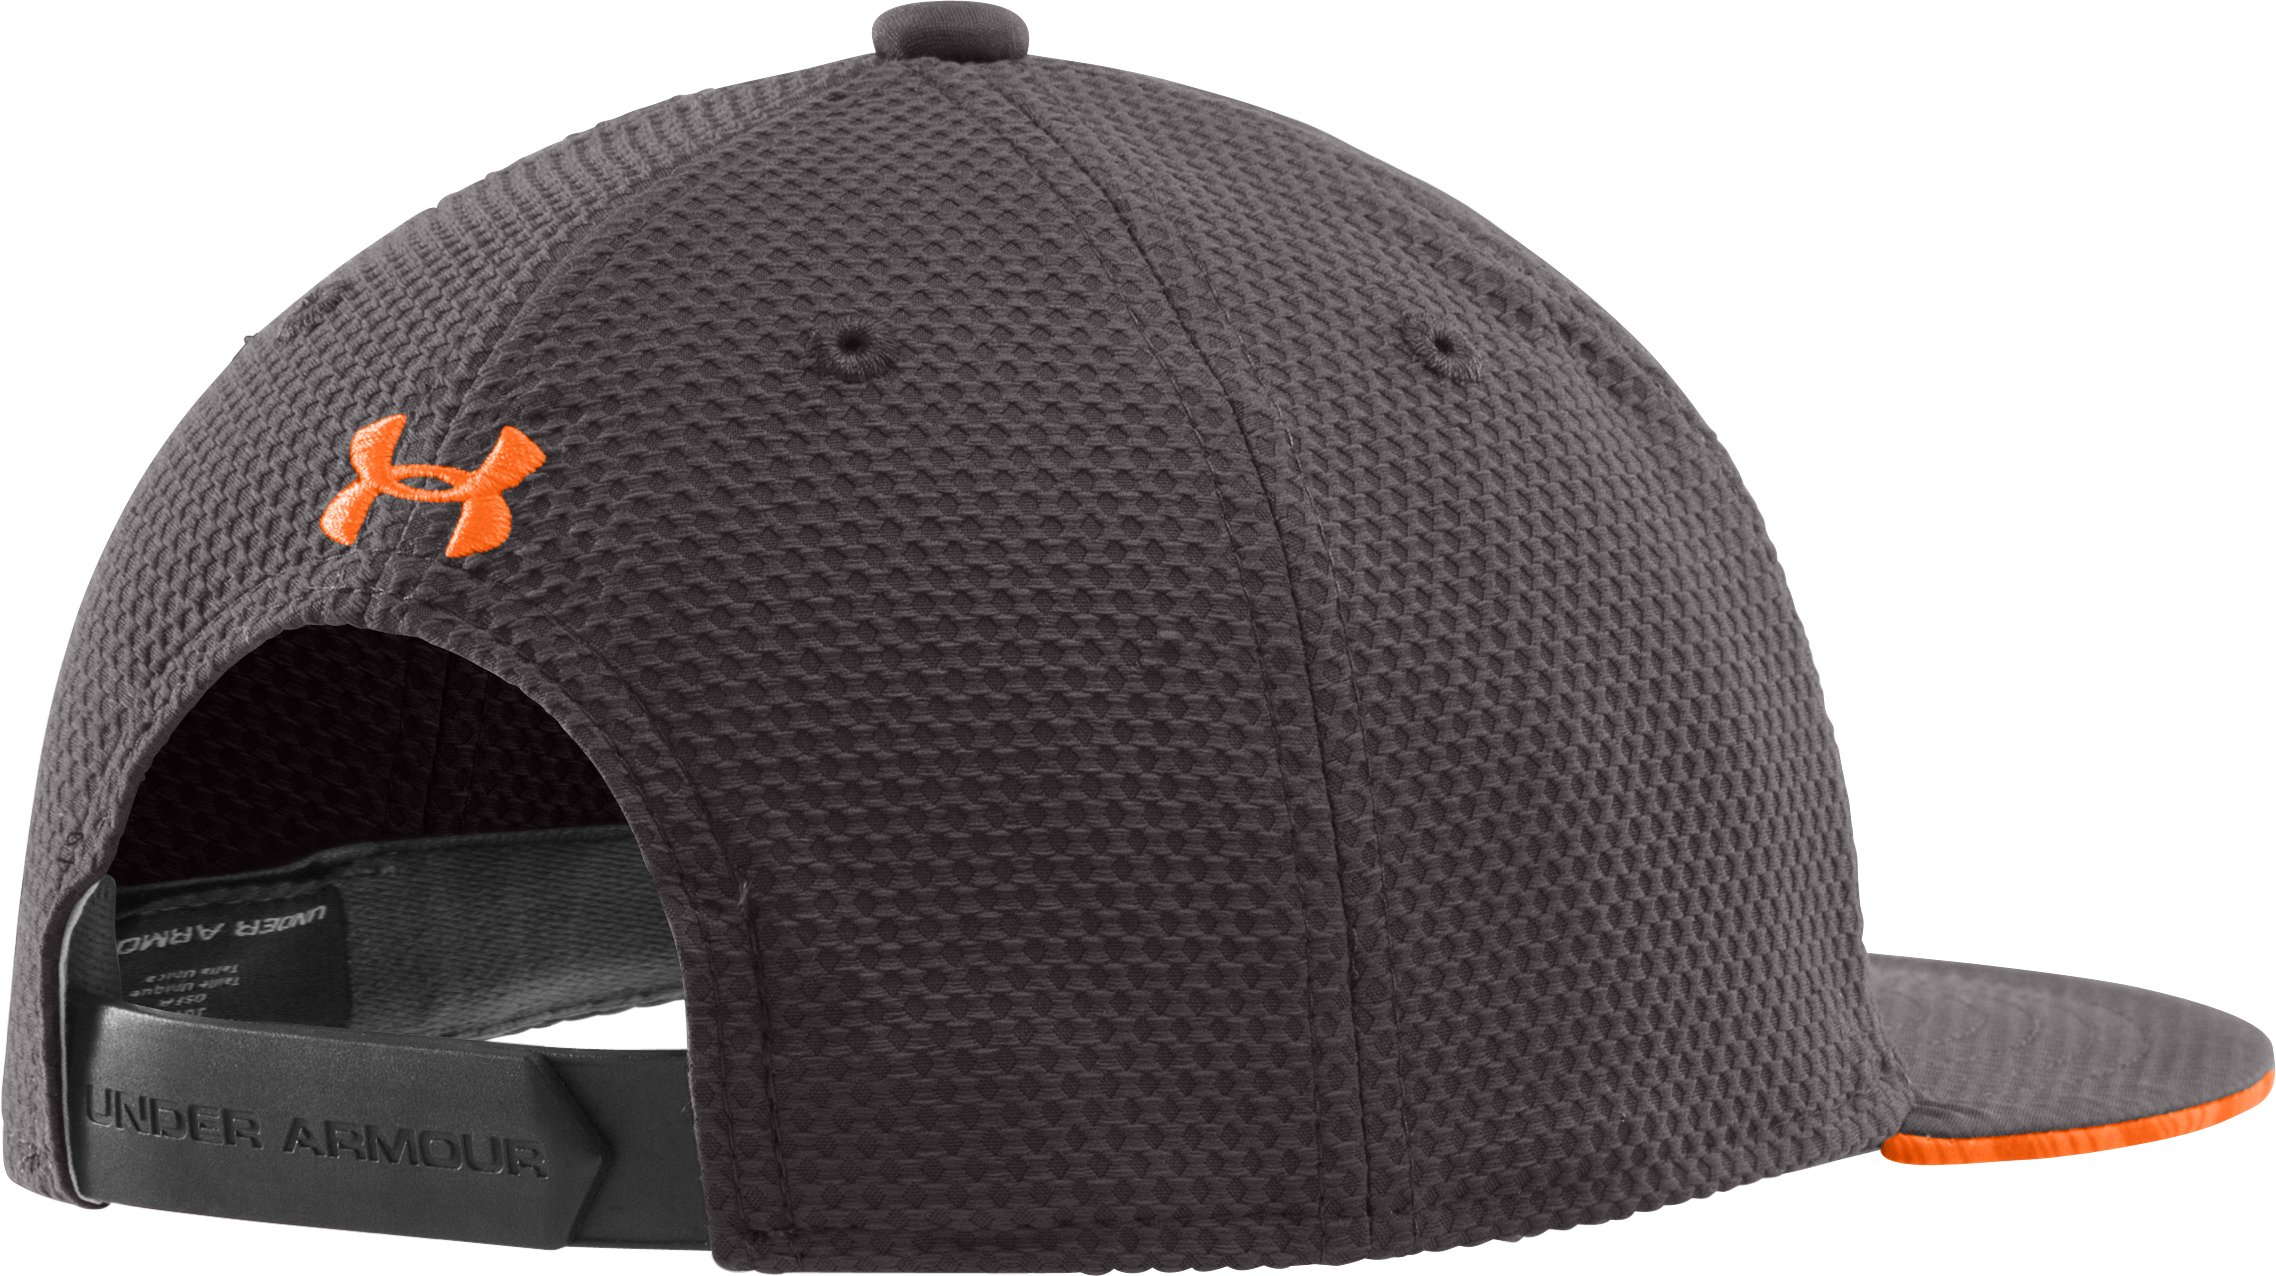 Boys' UA Eyes Up Spanback Flat Brim Cap, Charcoal